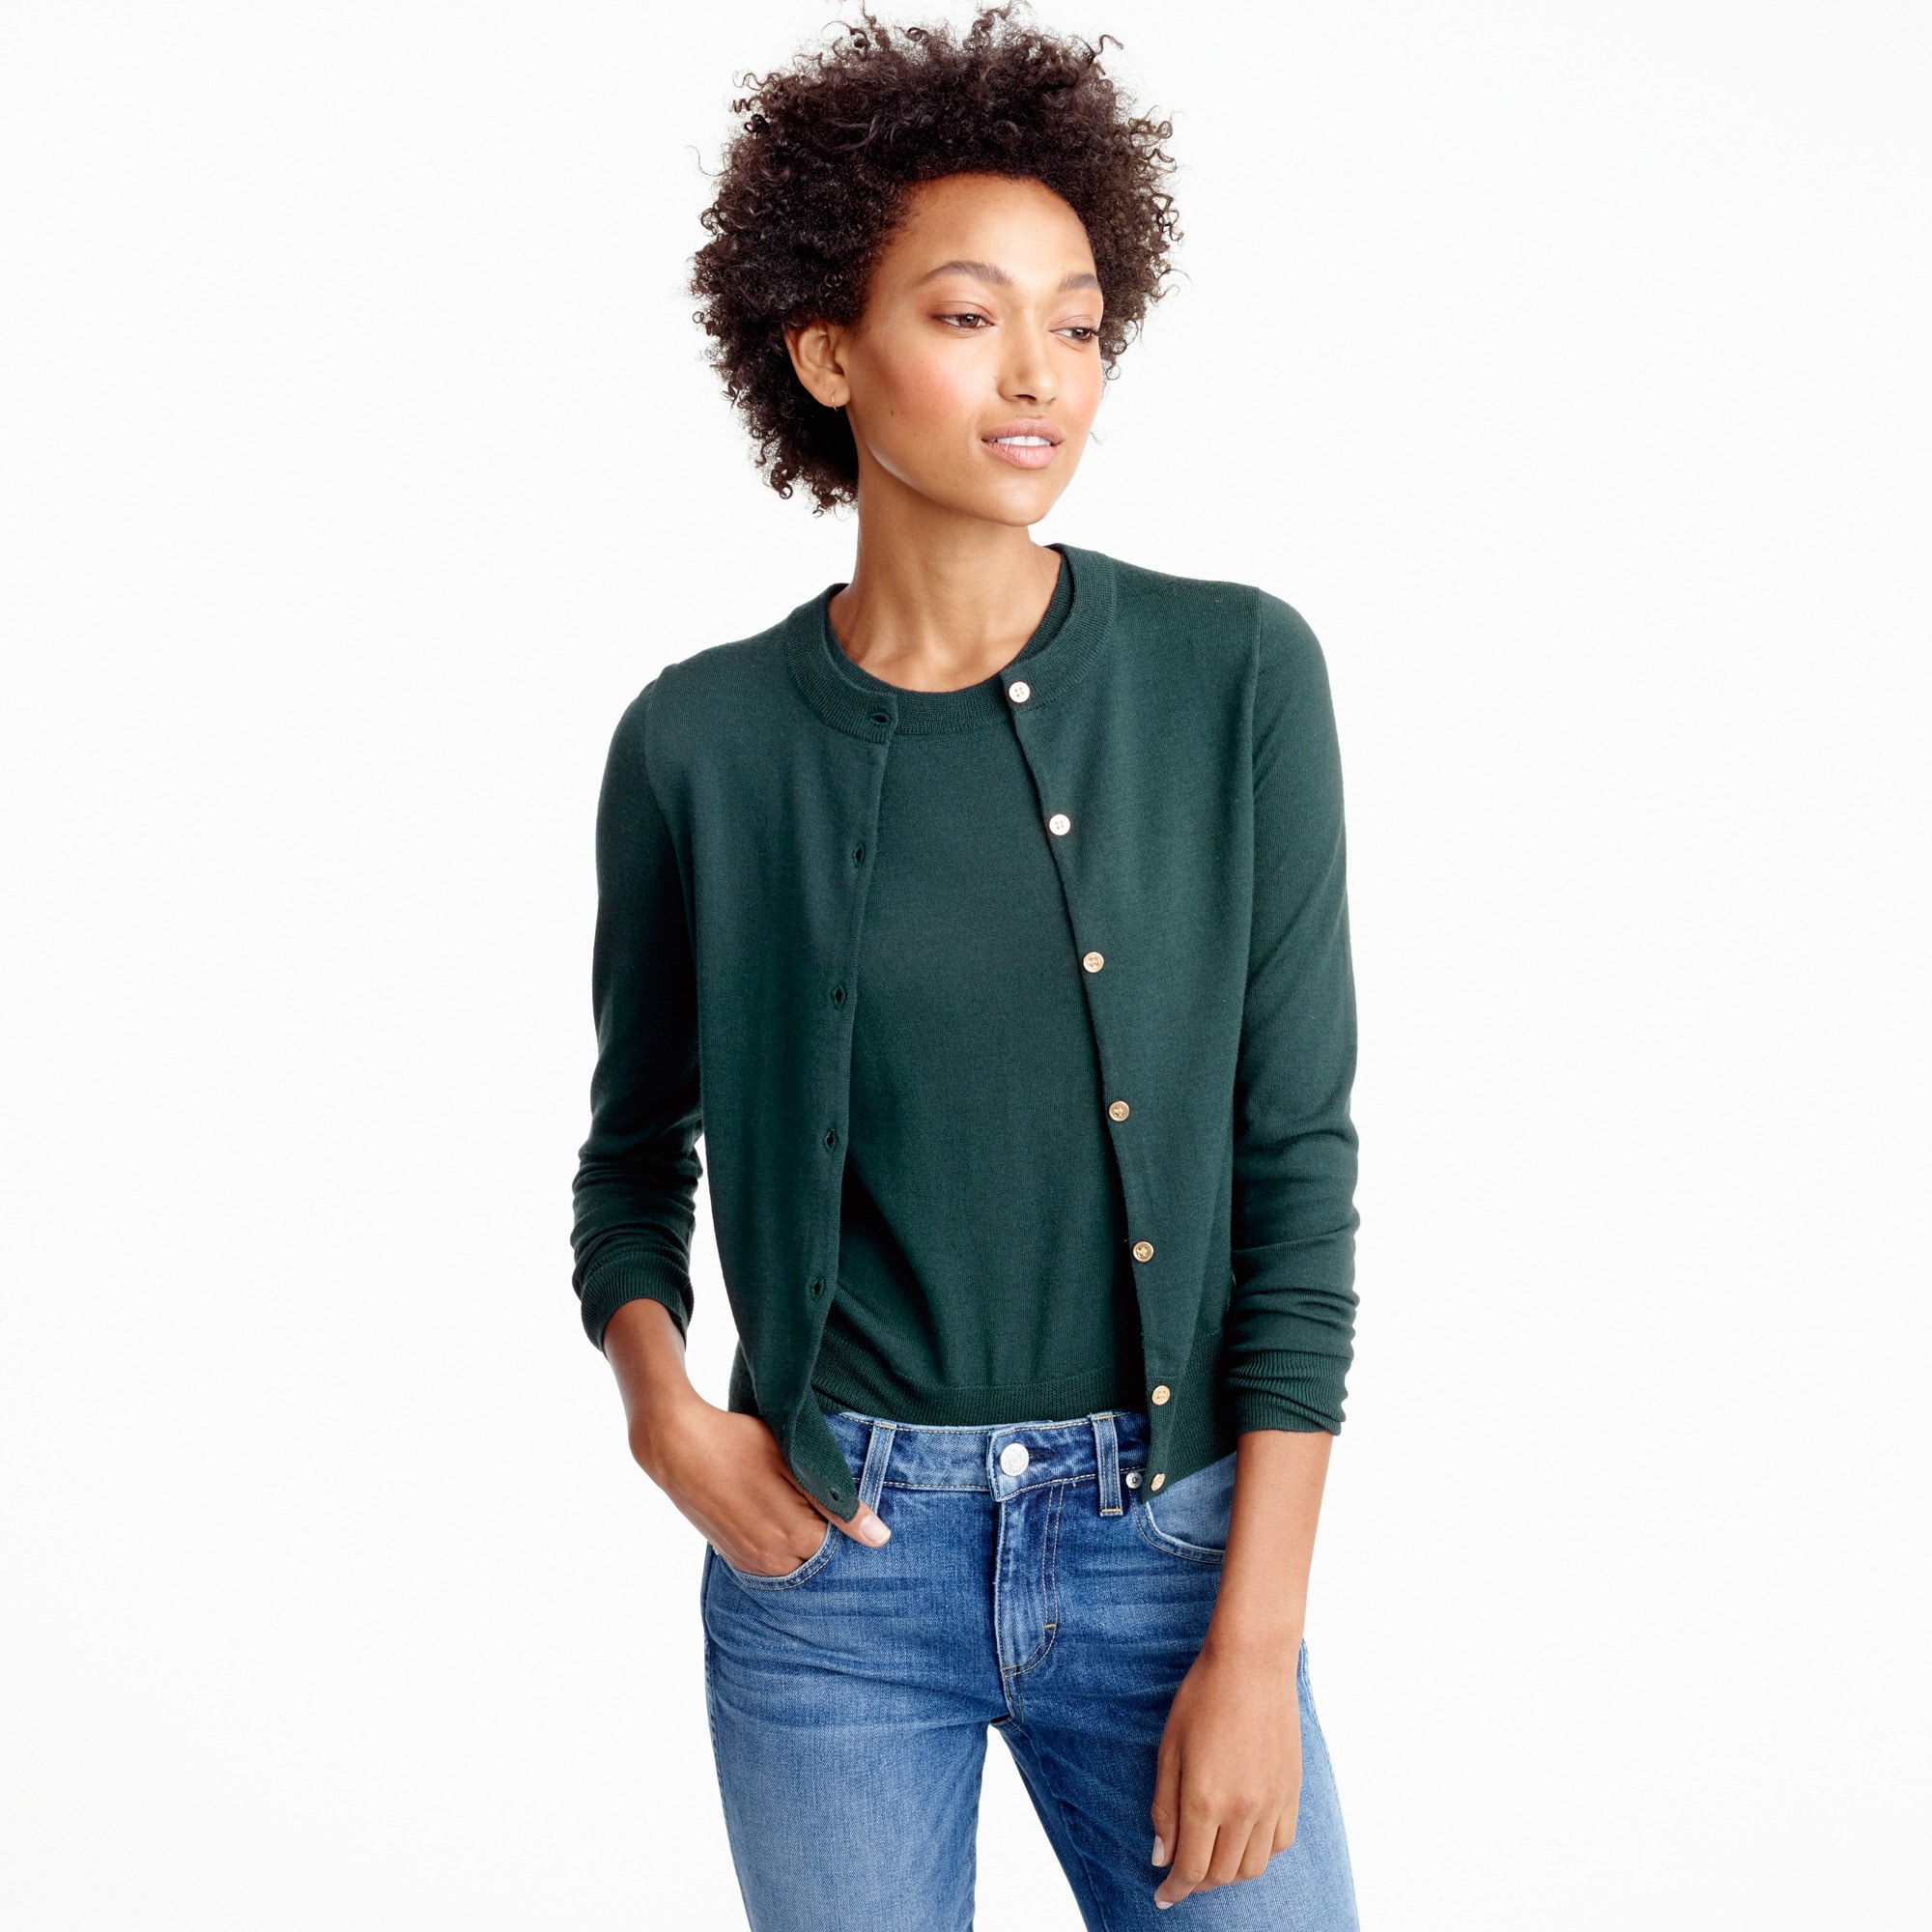 women's lightweight wool jackie cardigan sweater - women's sweaters